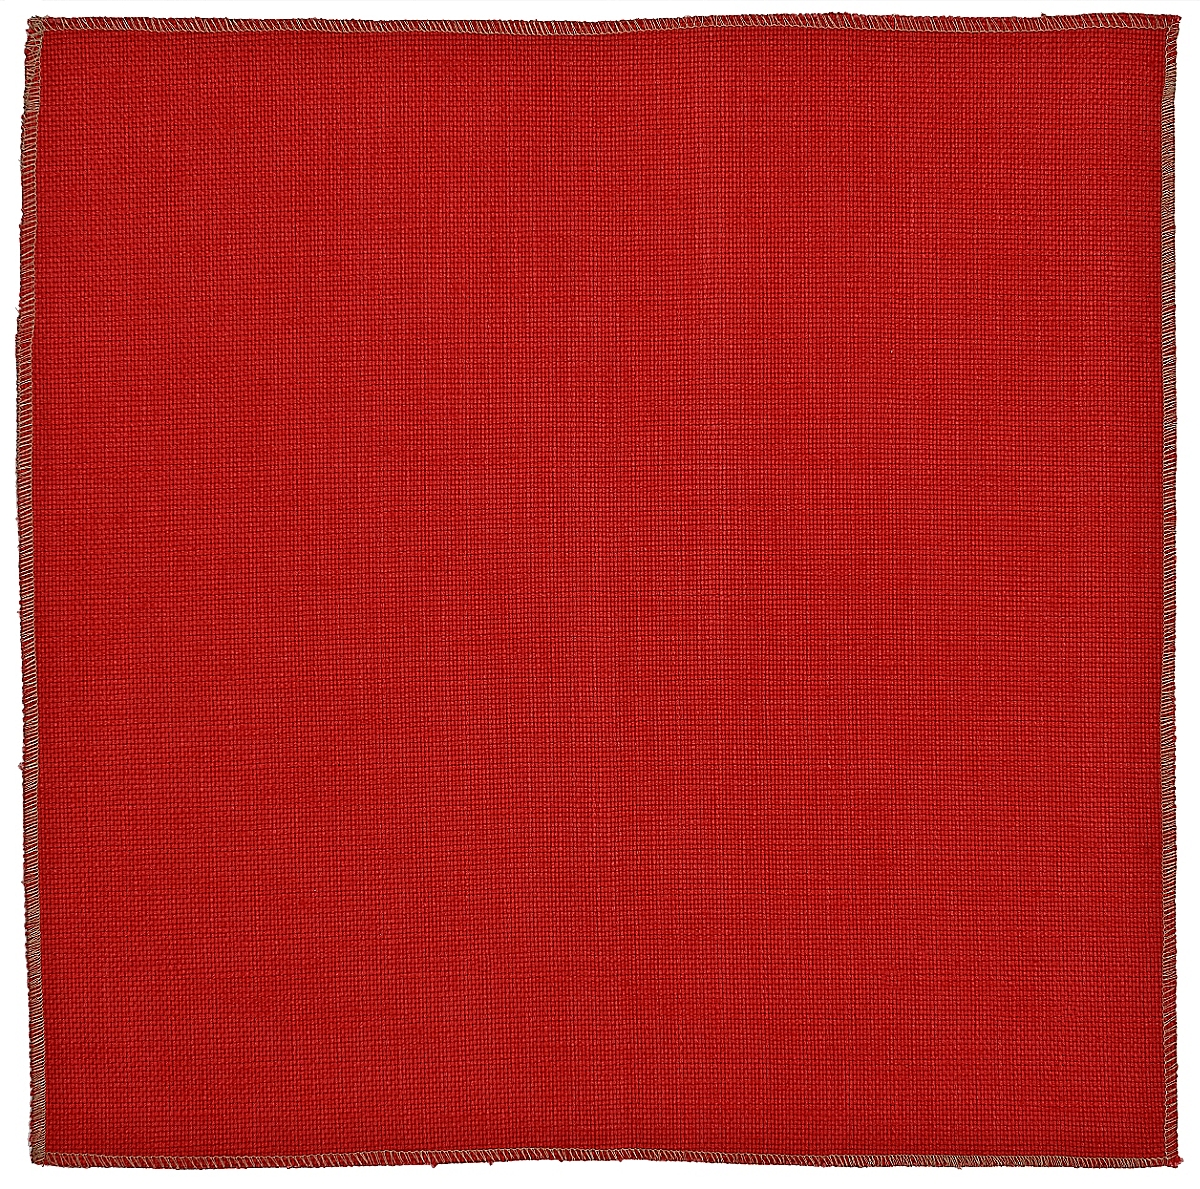 Basket: Tomato (fabric yardage)